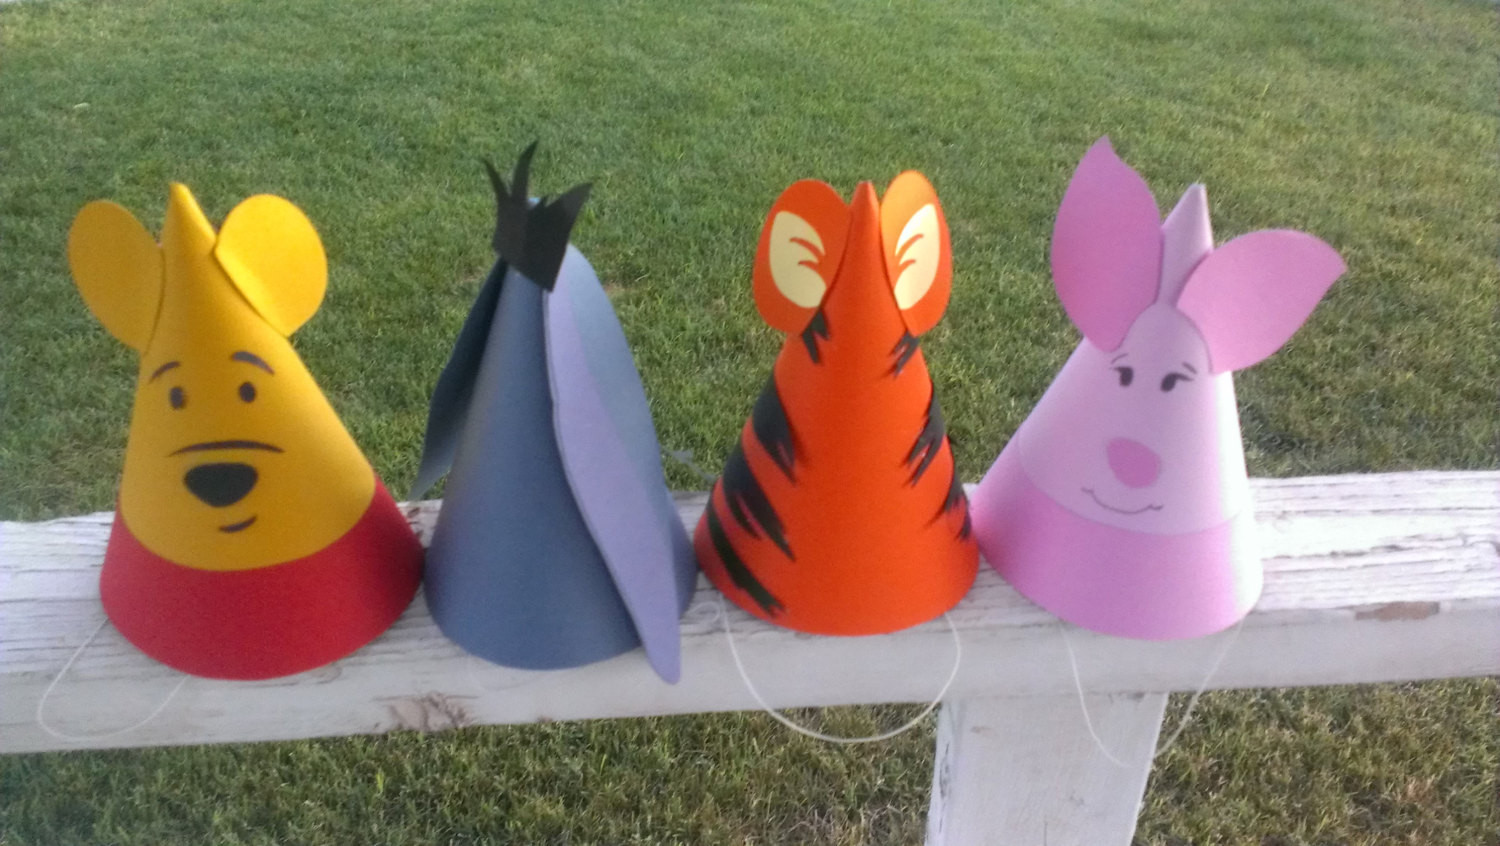 Best ideas about Winnie The Pooh Birthday Decorations . Save or Pin 8 Winnie the Pooh Birthday Party Hats Pooh & Frends Now.